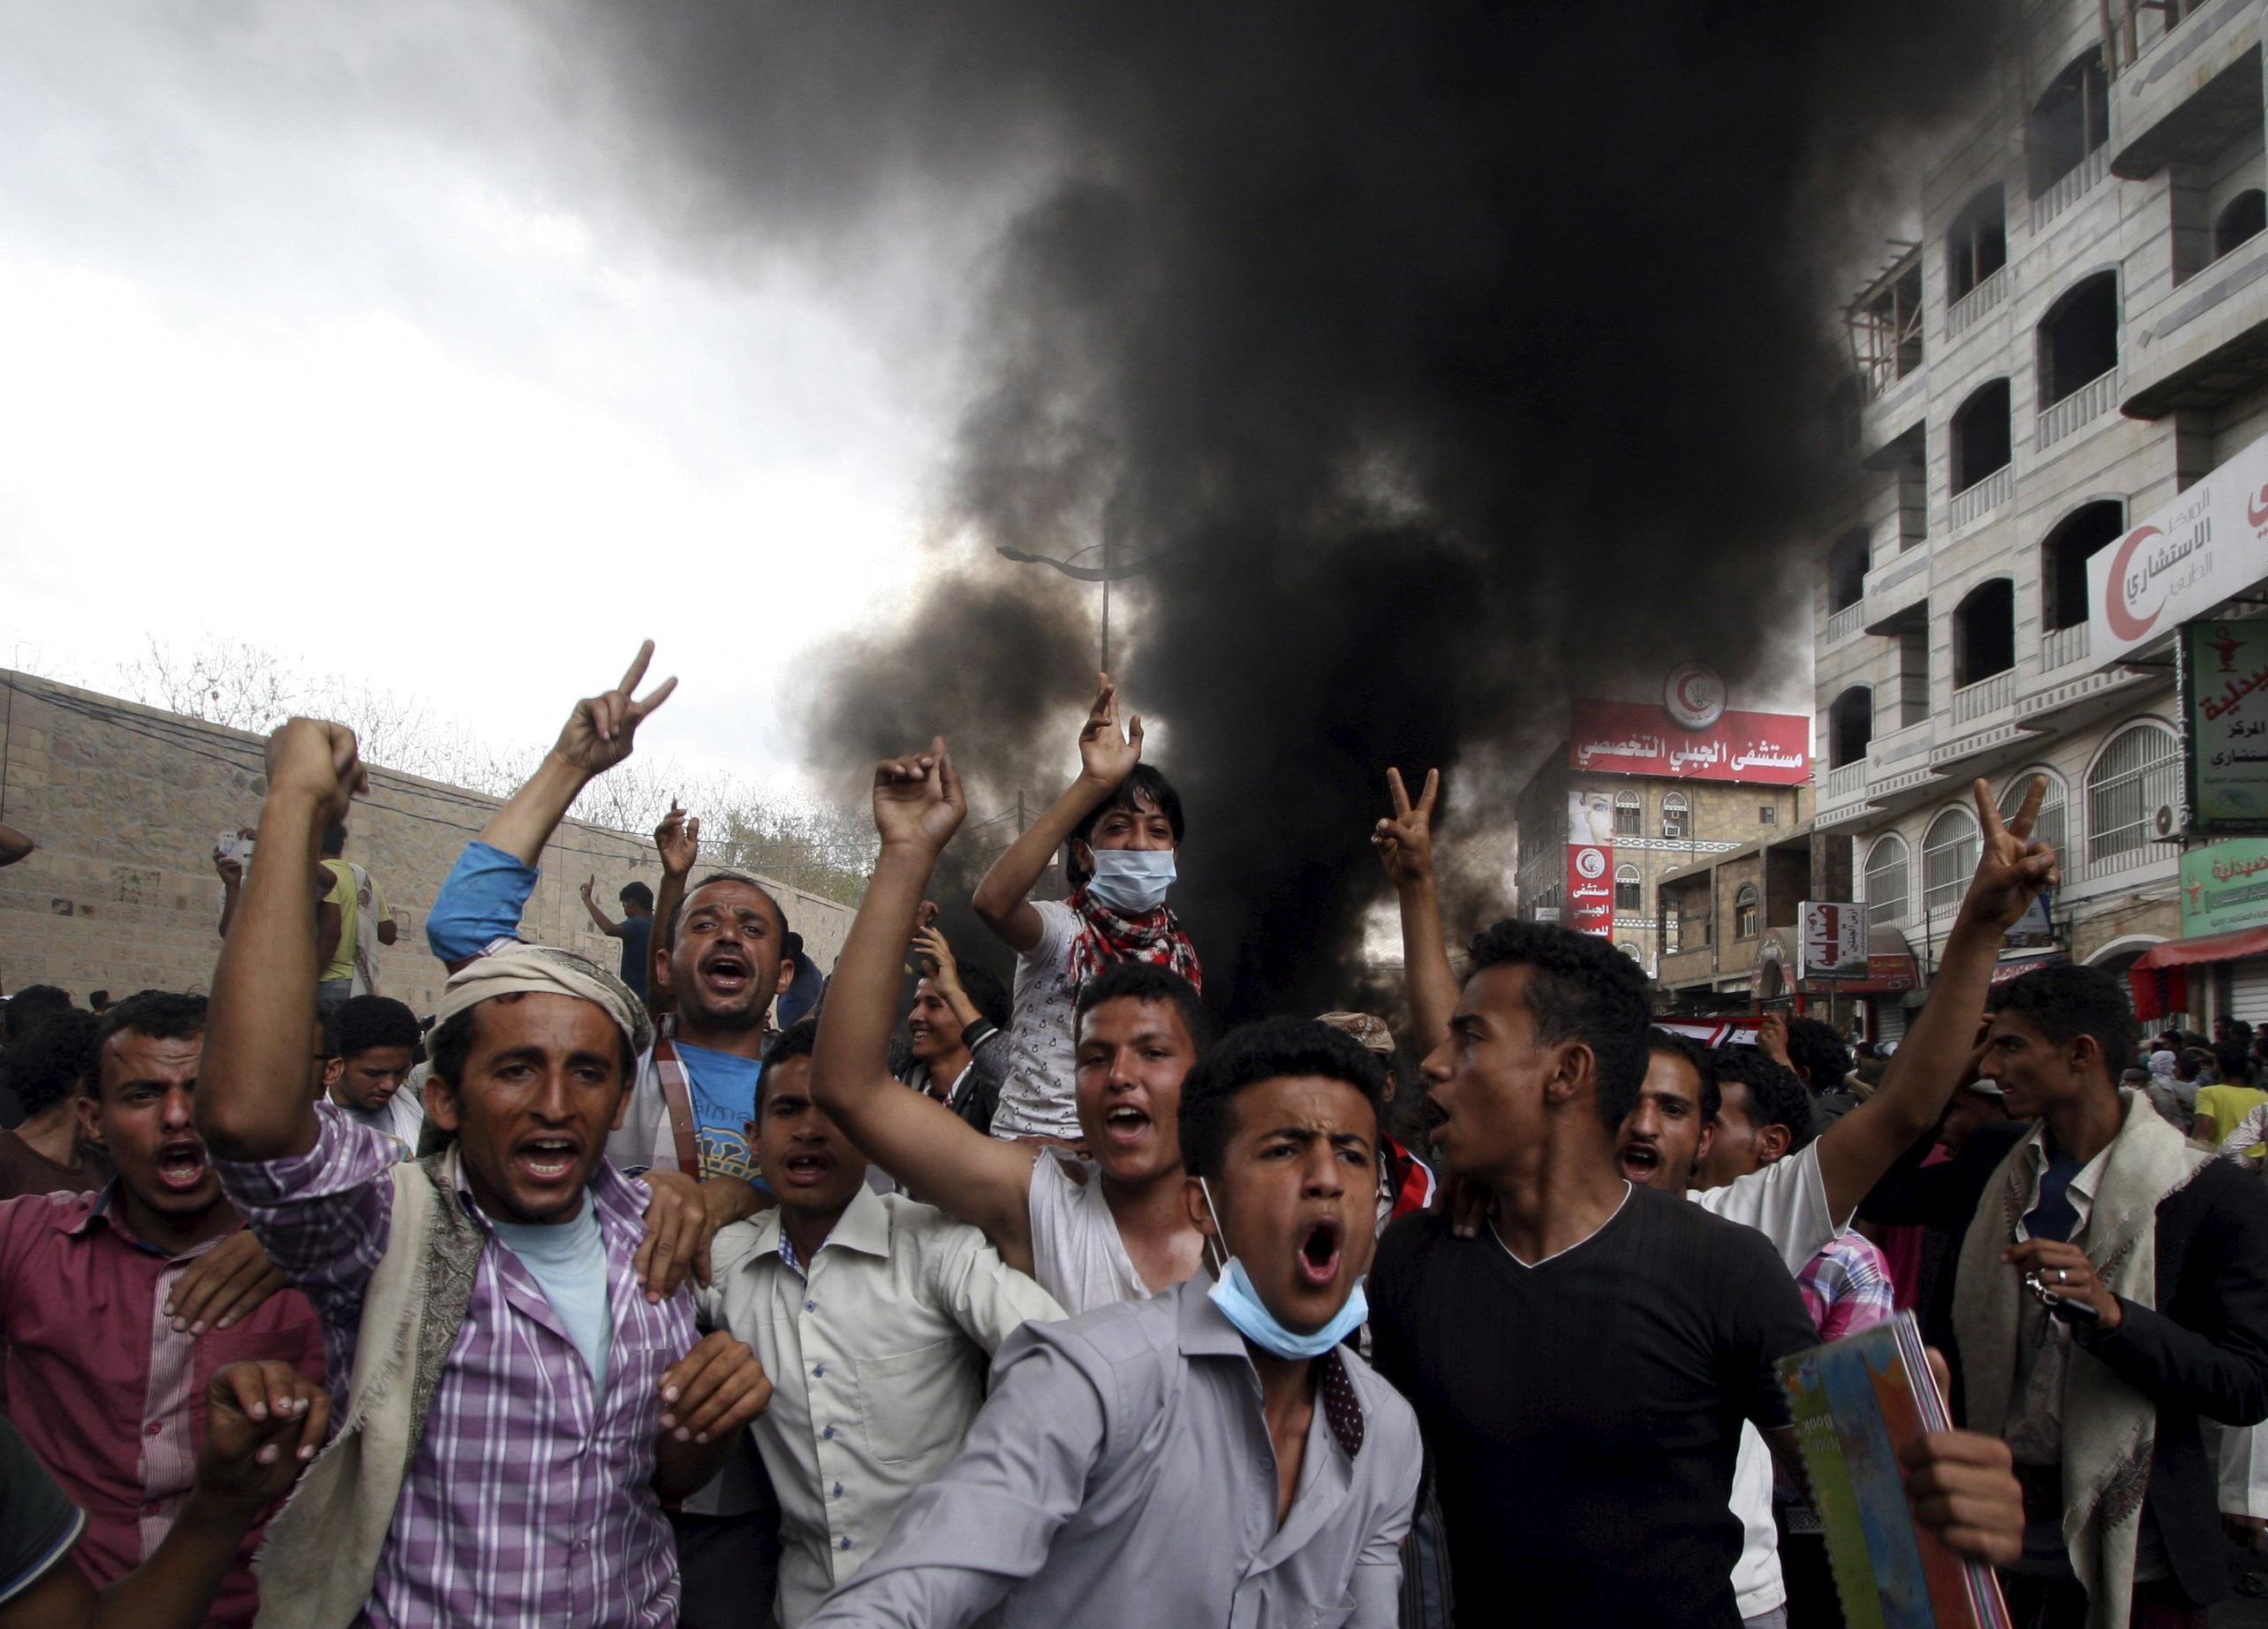 Anti-Houthi protesters demonstrate in Yemen's southwestern city of Taiz, March 23, 2015.